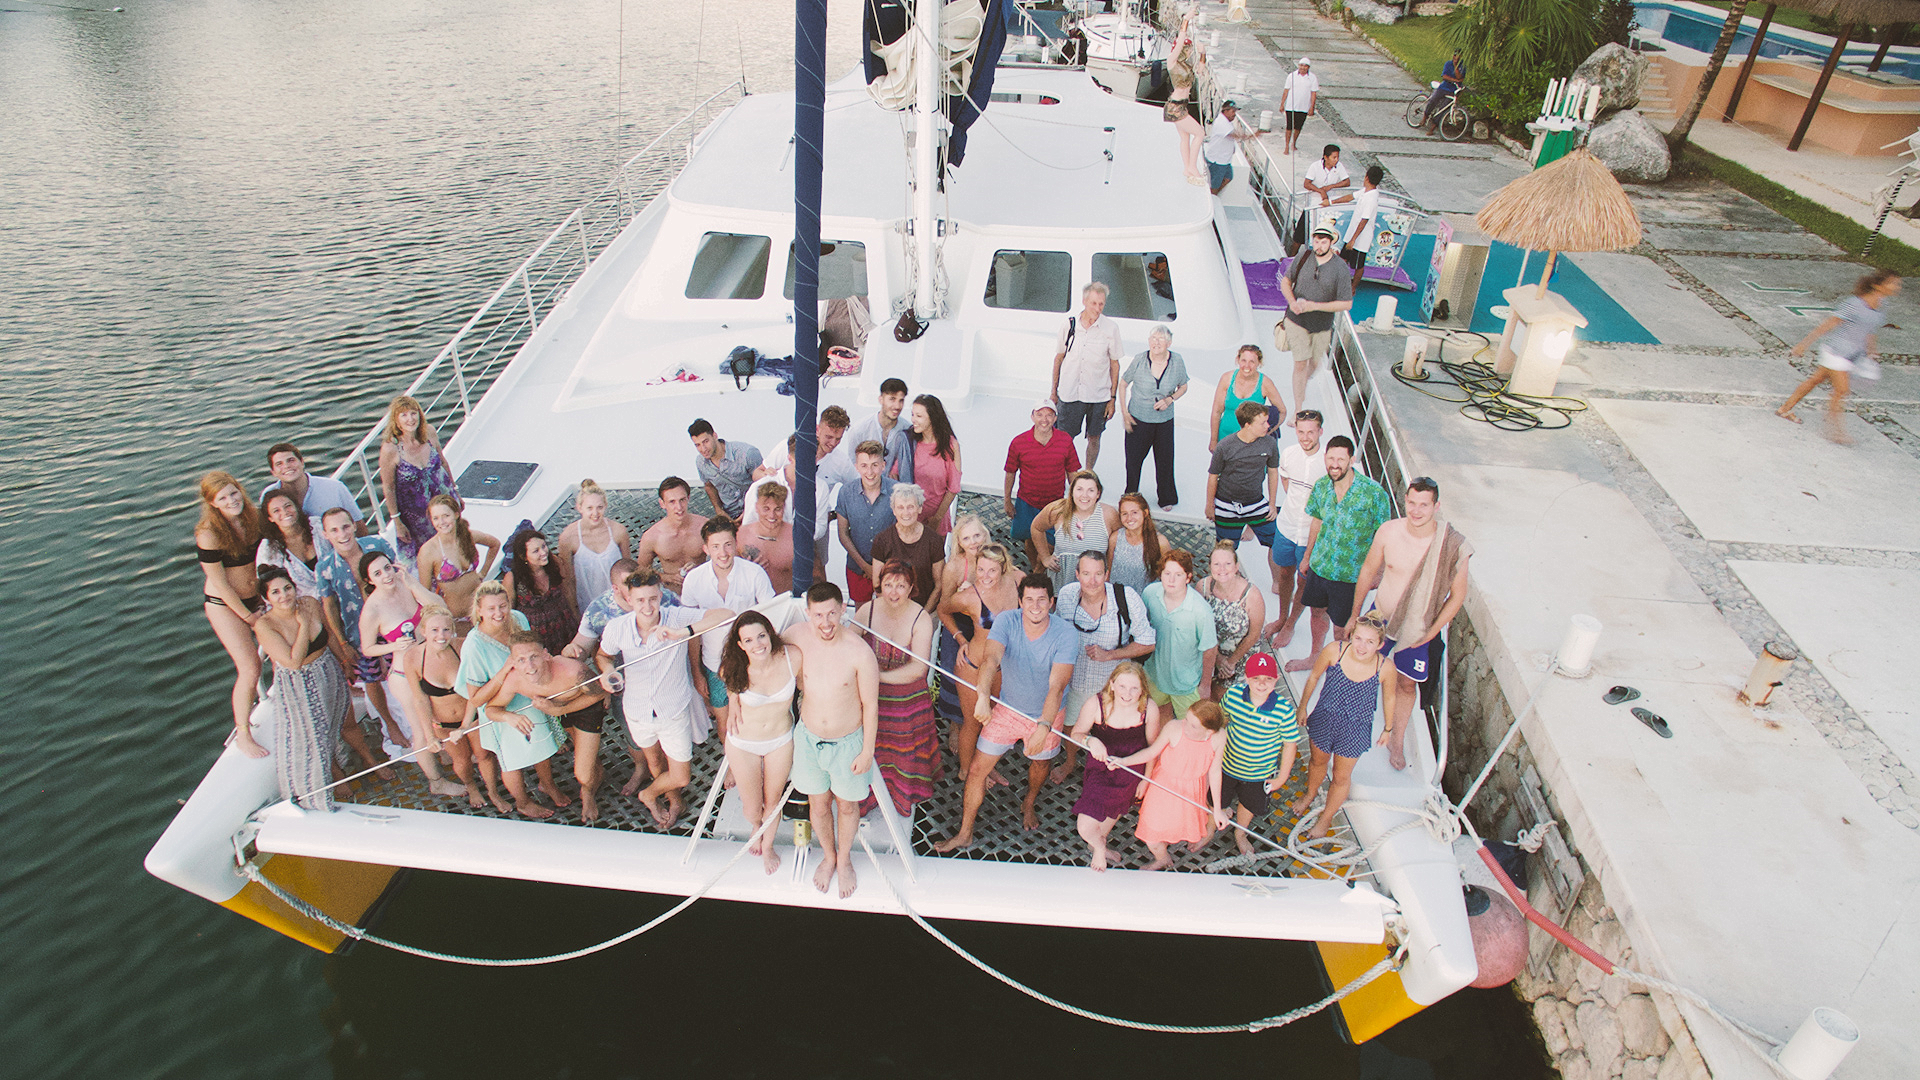 We took a group shot once we returned to the harbor...SO much fun!